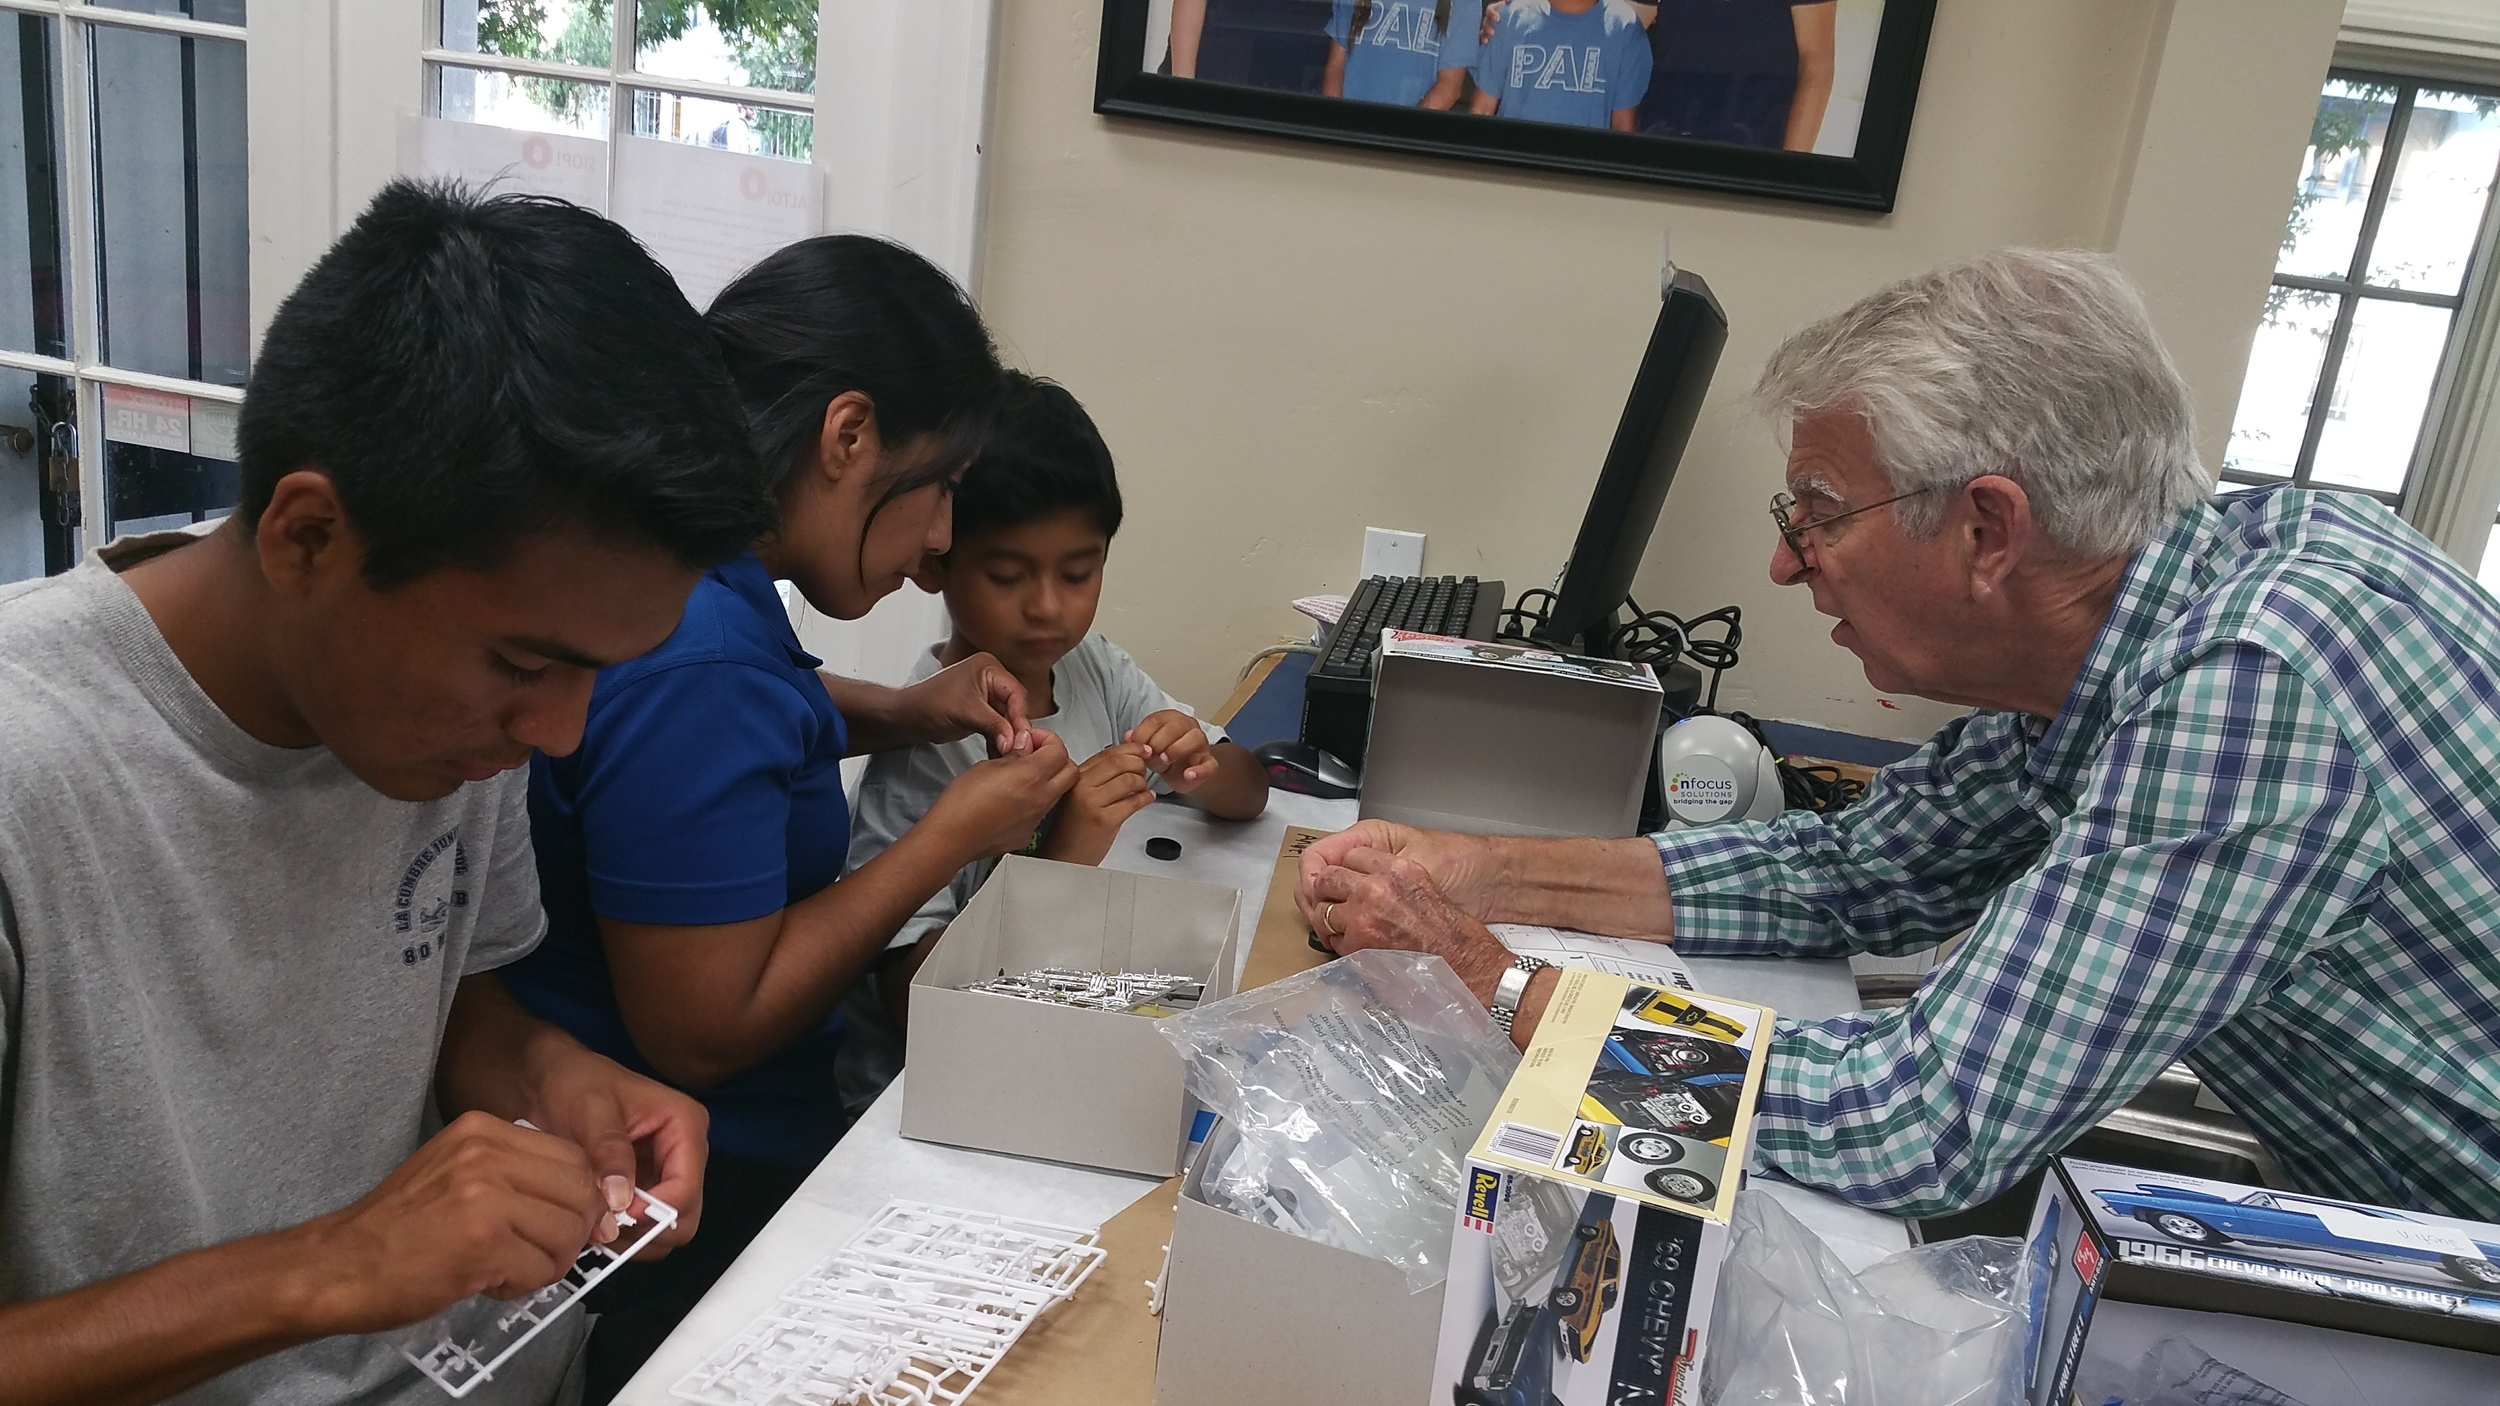 Volunteer Mike Cleary helps the children.